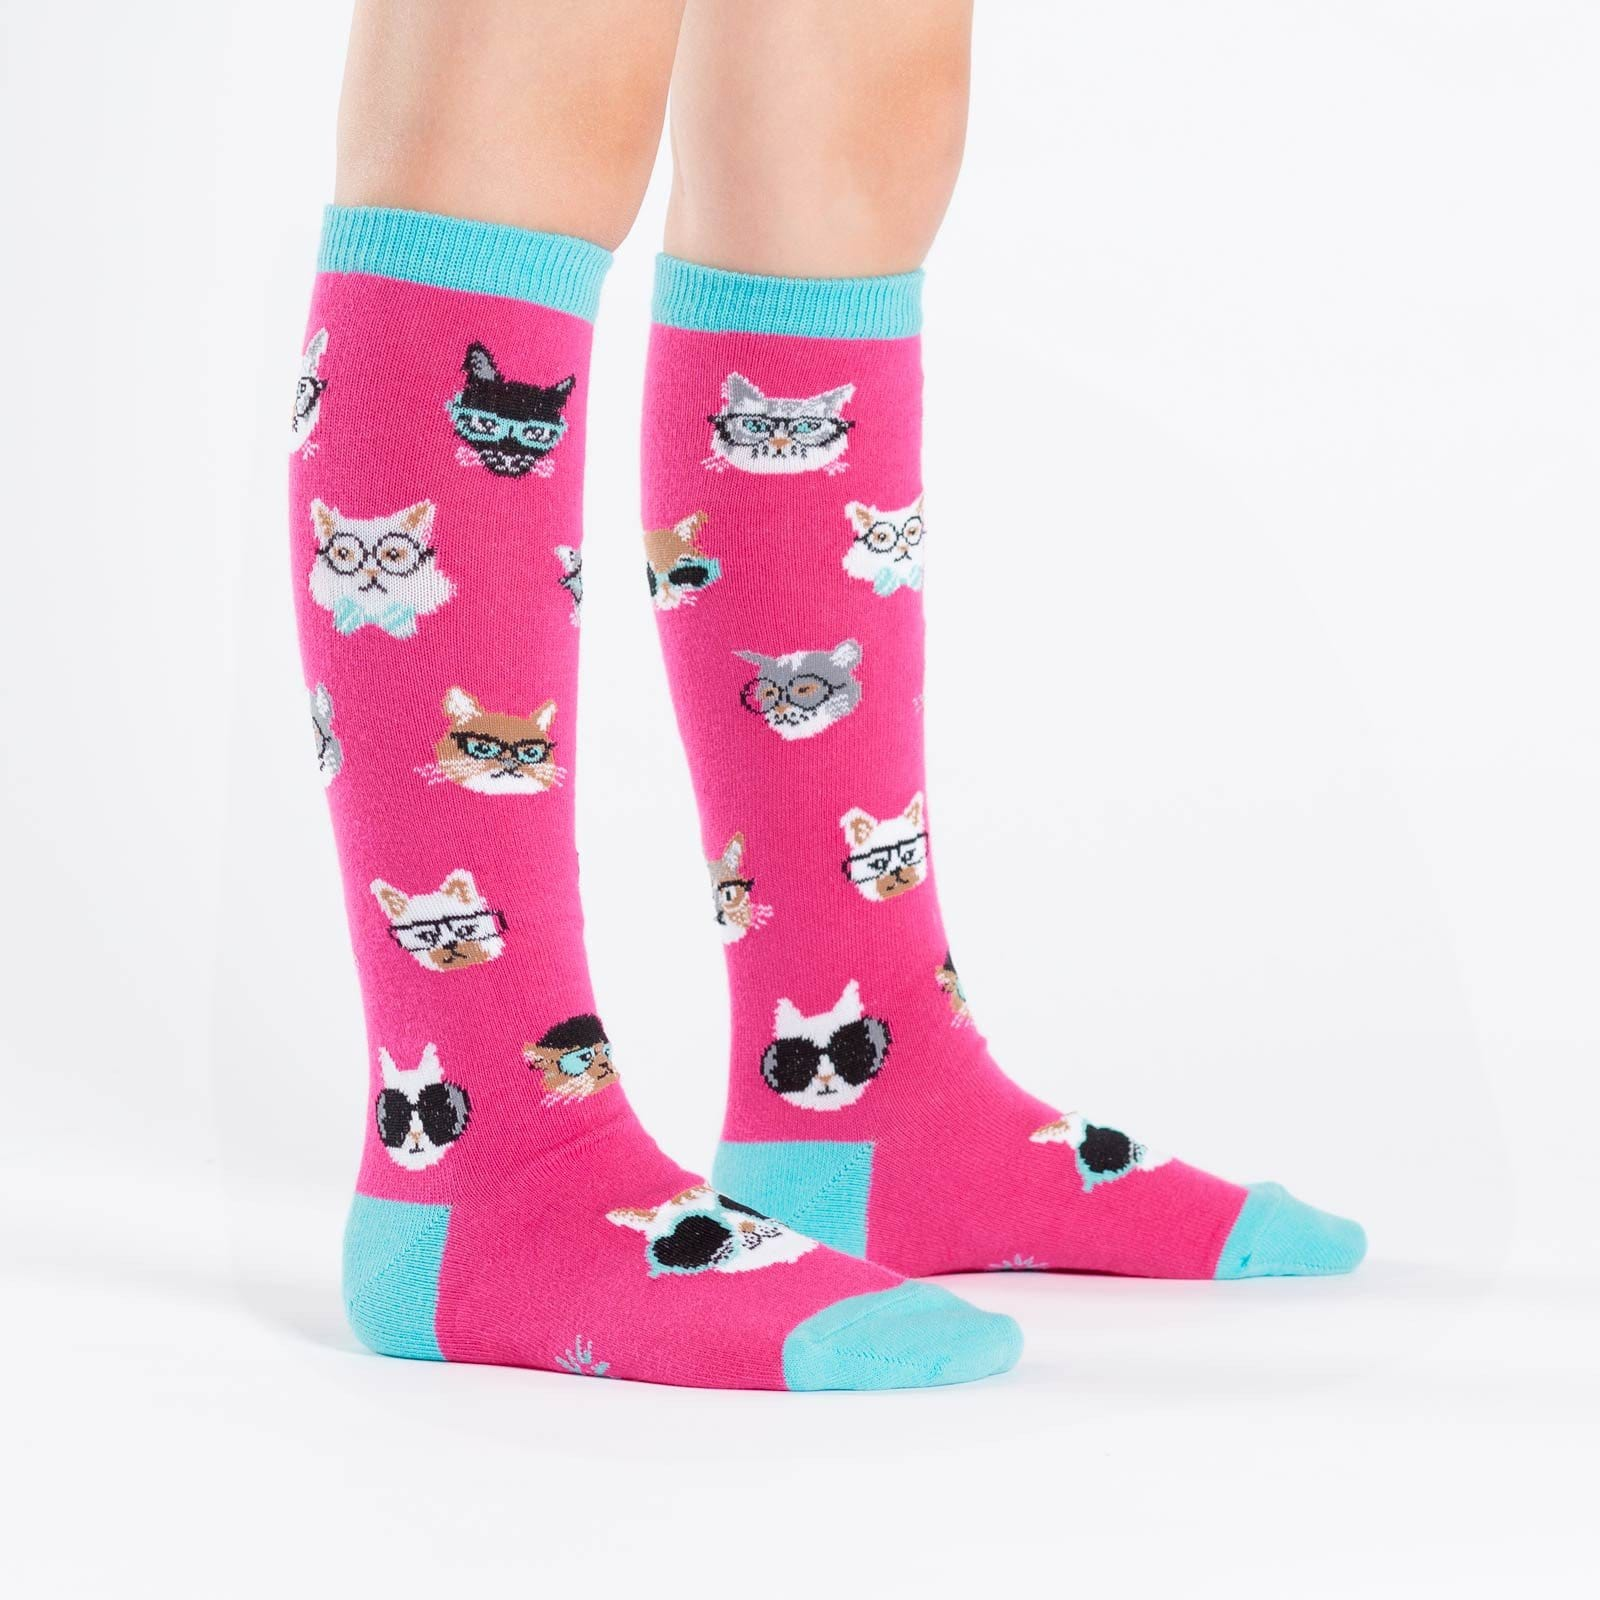 Smarty Cats Socks - Junior Knee High